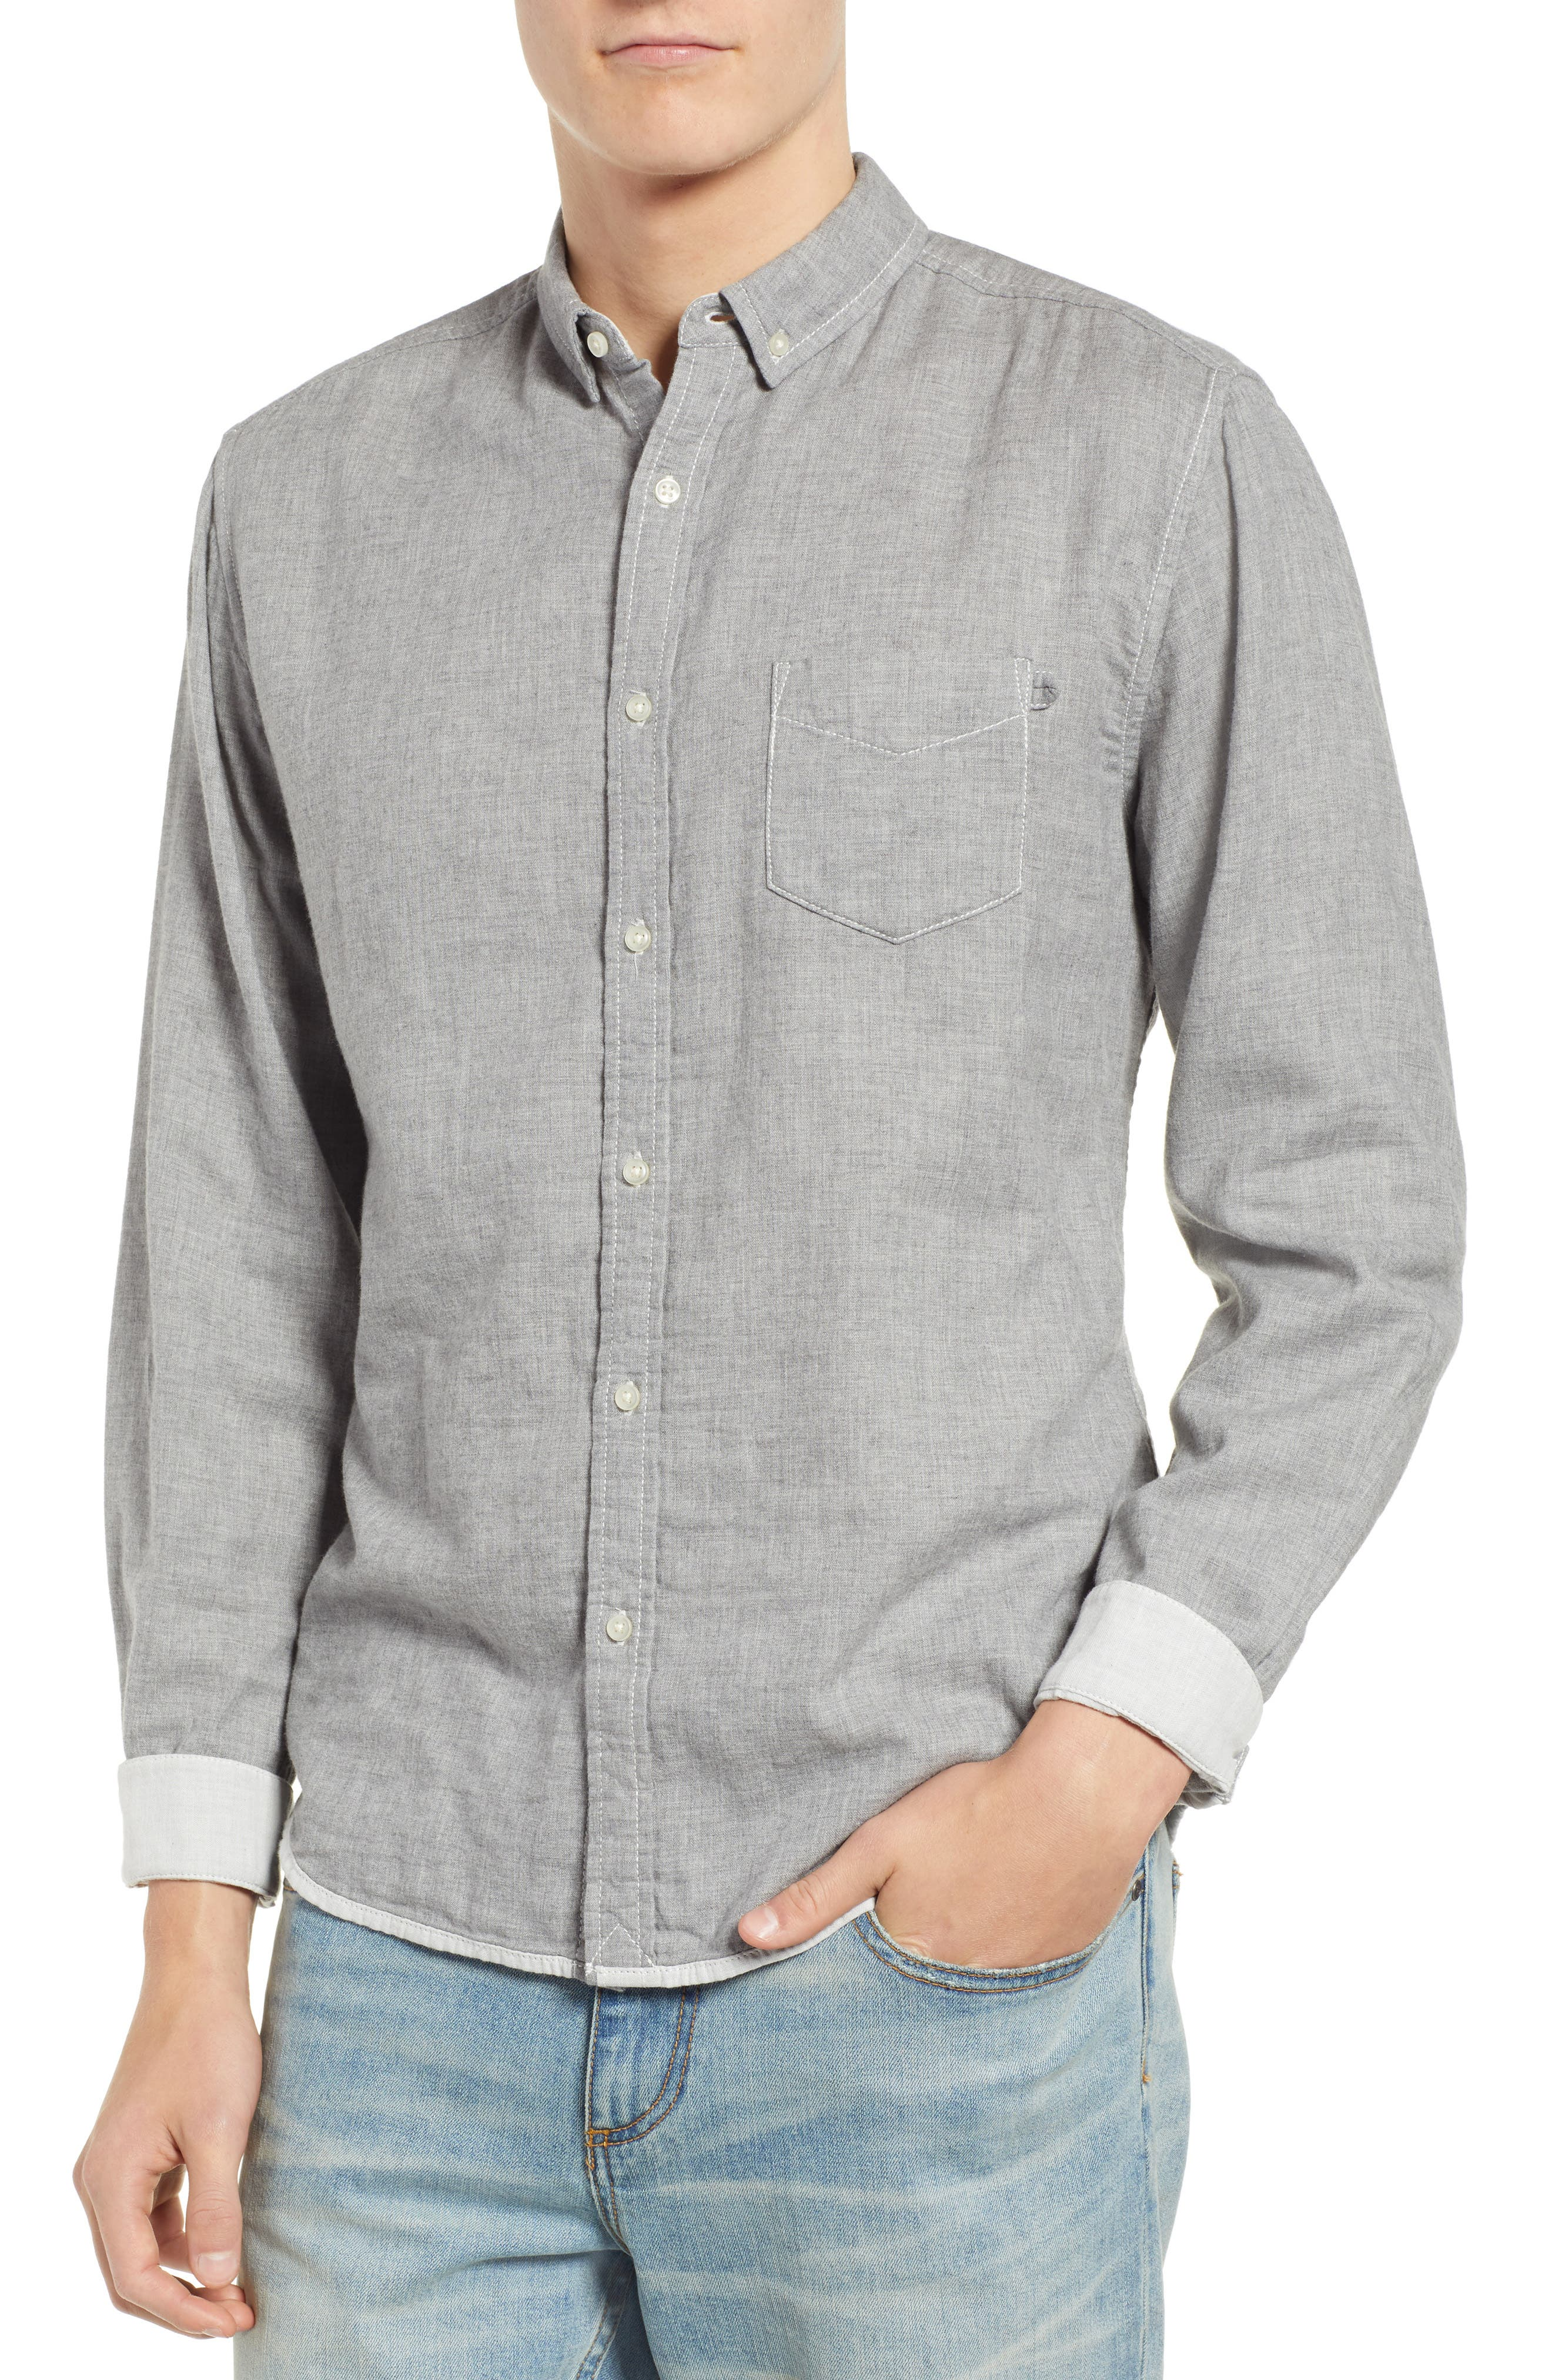 Ithaca Slim Fit Chambray Sport Shirt,                         Main,                         color, HEATHER GREY